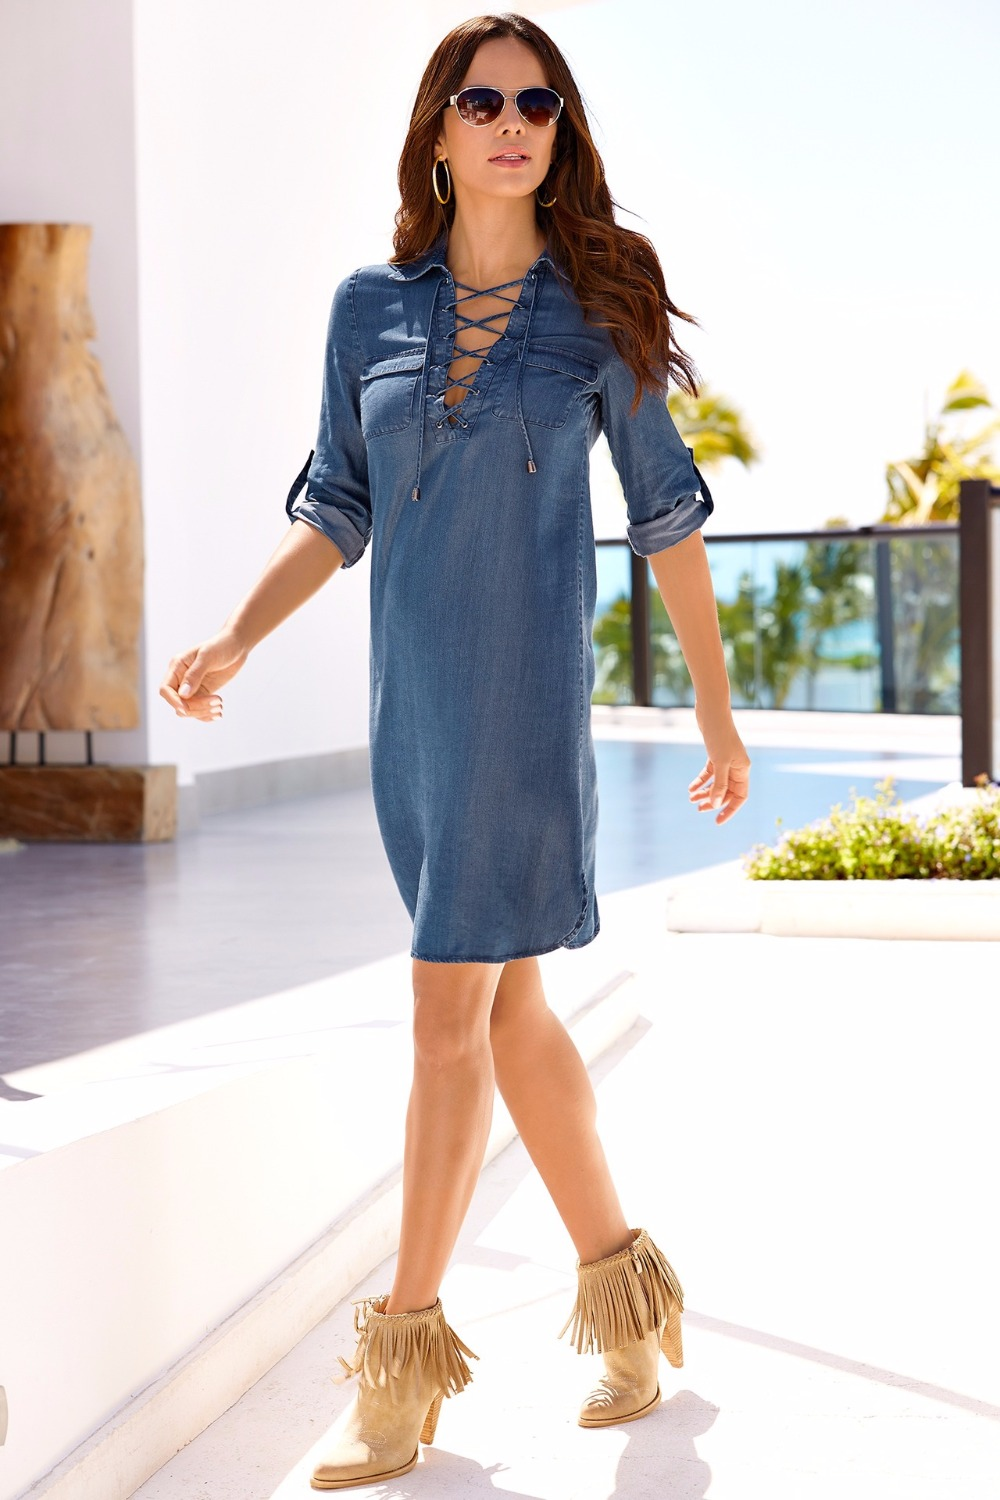 c2e26823f5 Chambray Lace Up Dress Denim Long Sleeve Denim Dress-in Dresses from  Women s Clothing on Aliexpress.com